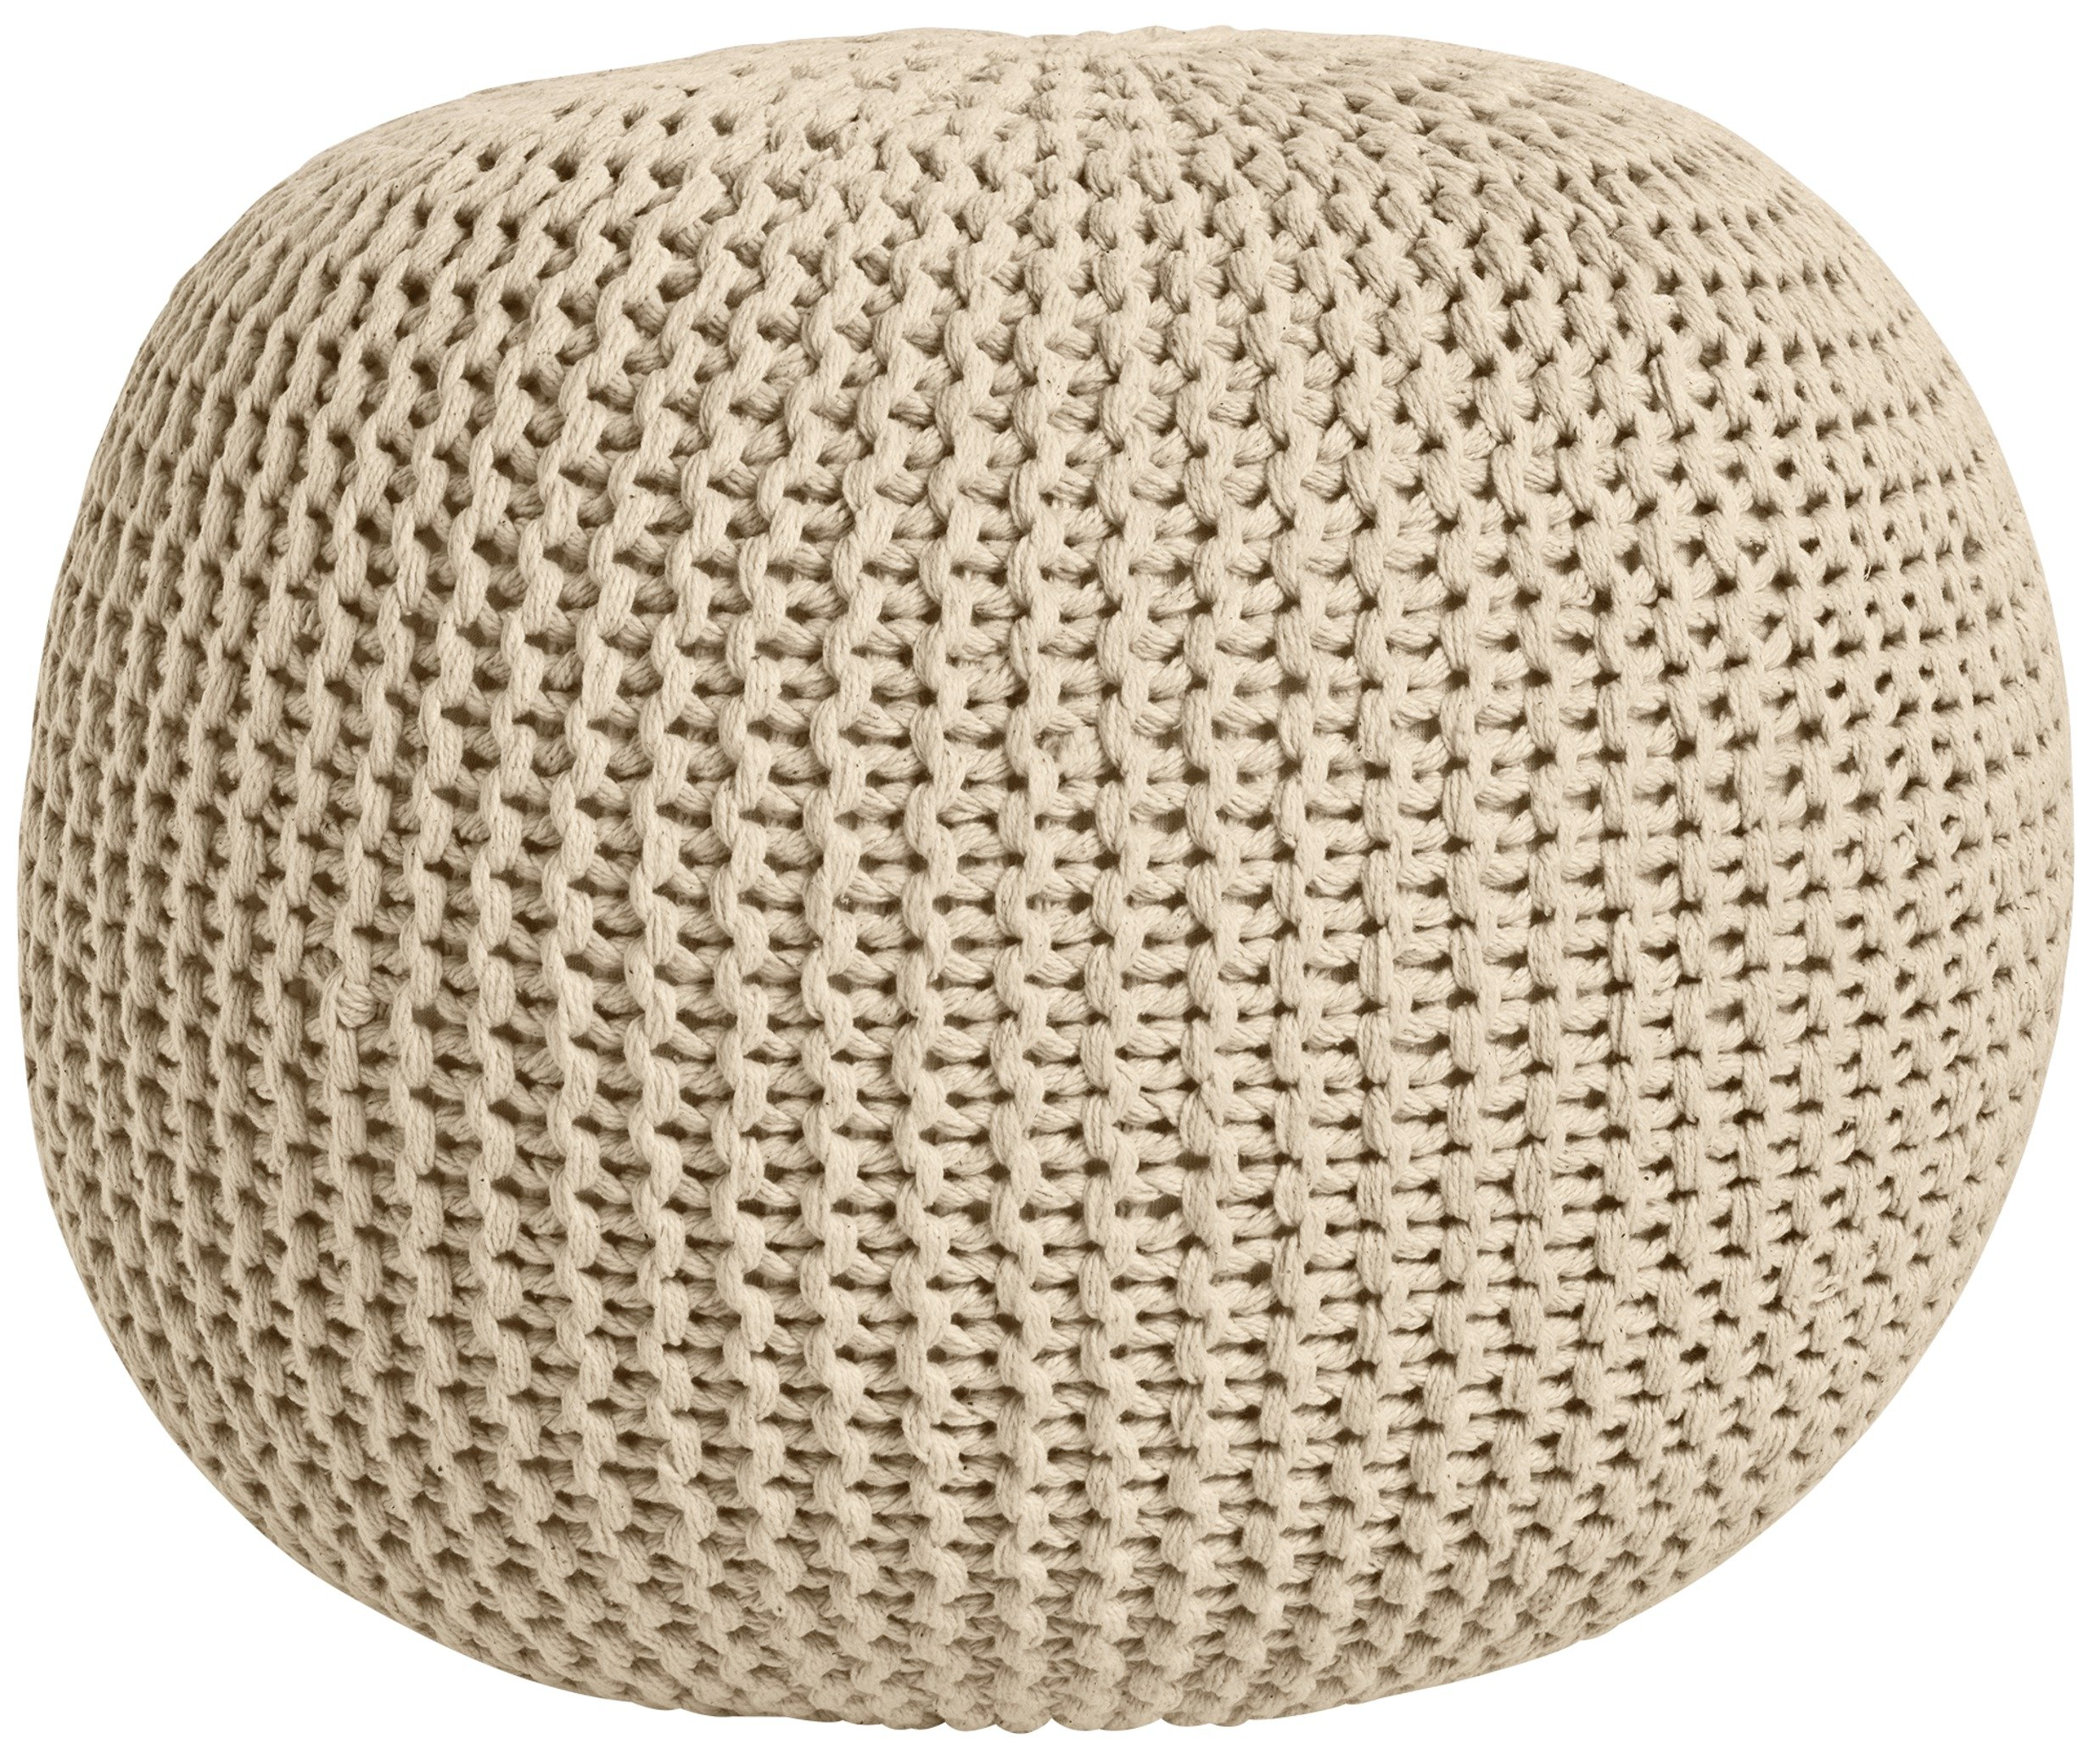 HOME Knitted Pouffe Footstool - Natural